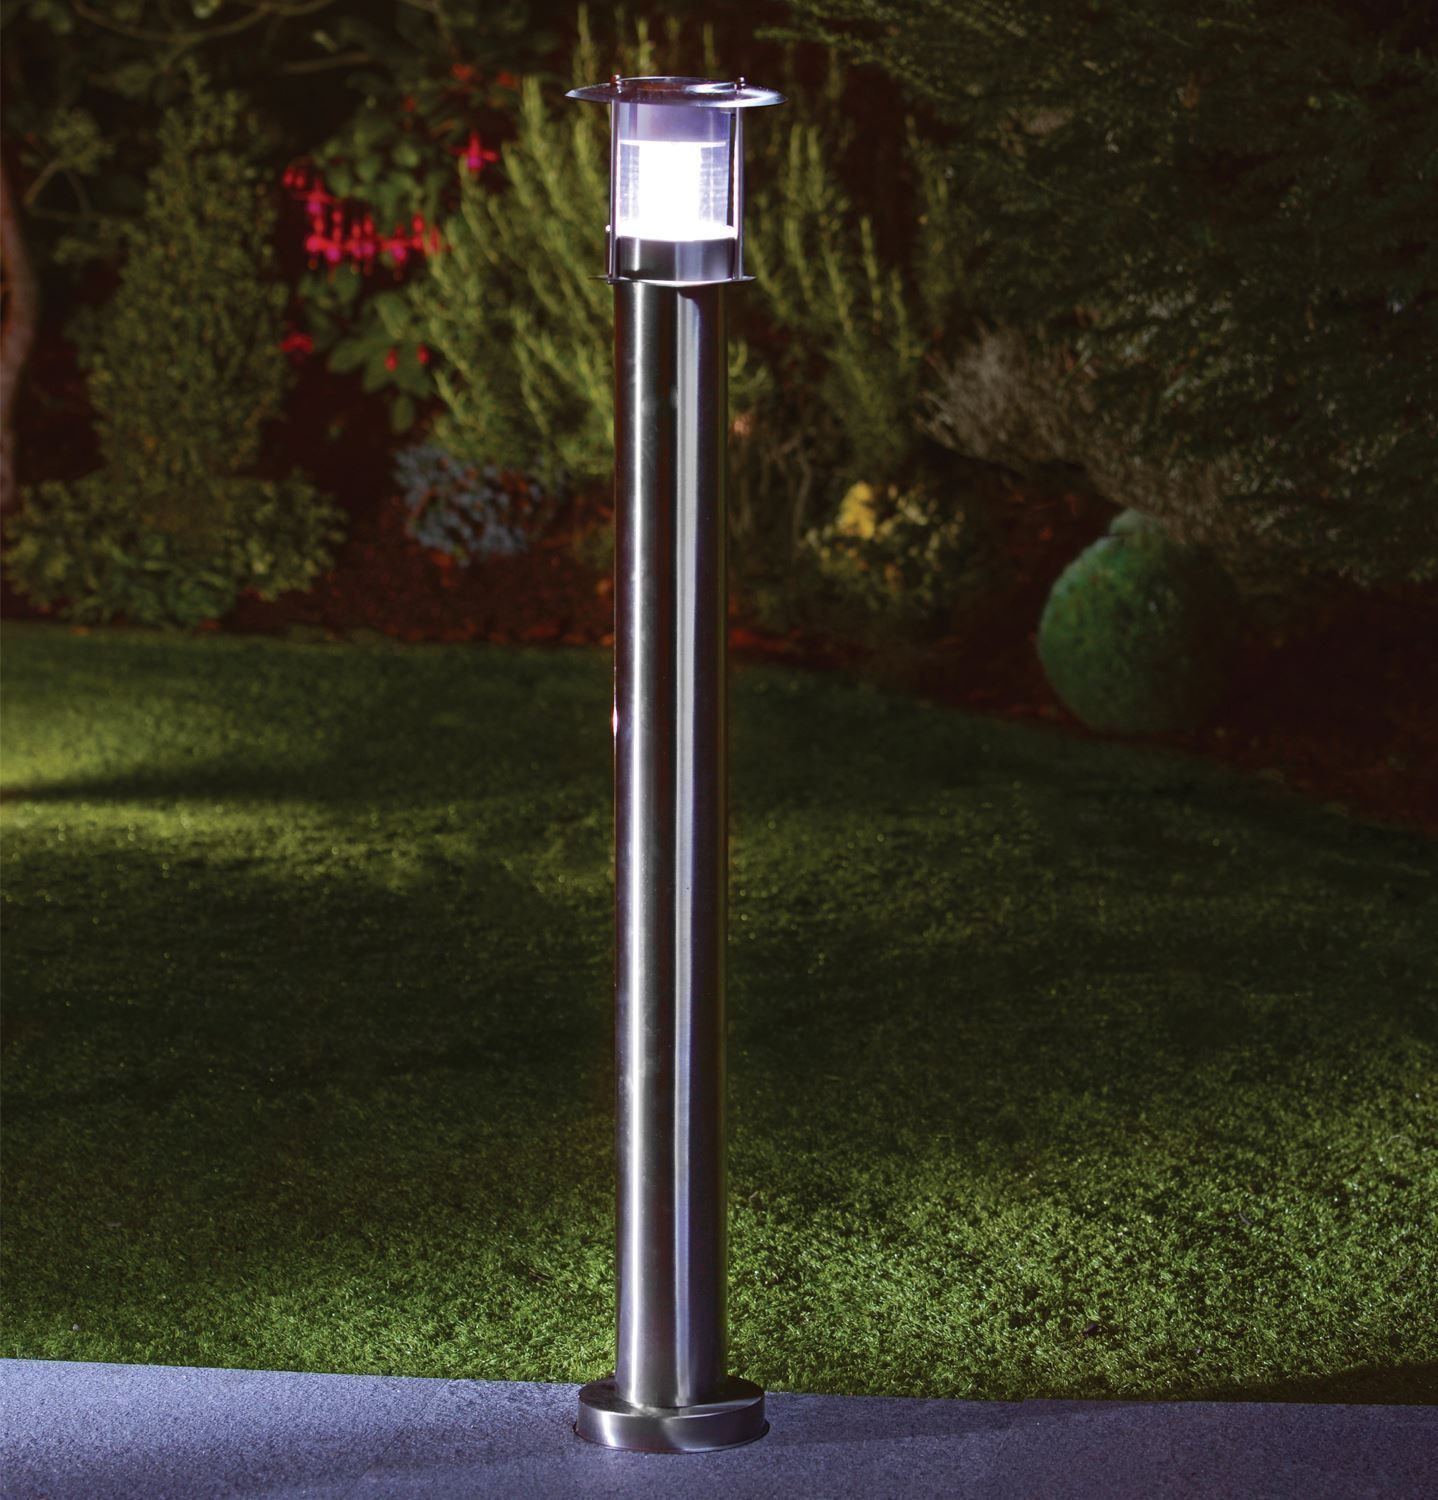 Outdoor Lights On Patio: 90CM STAINLESS STEEL OUTDOOR PATIO DRIVEWAY GARDEN LED